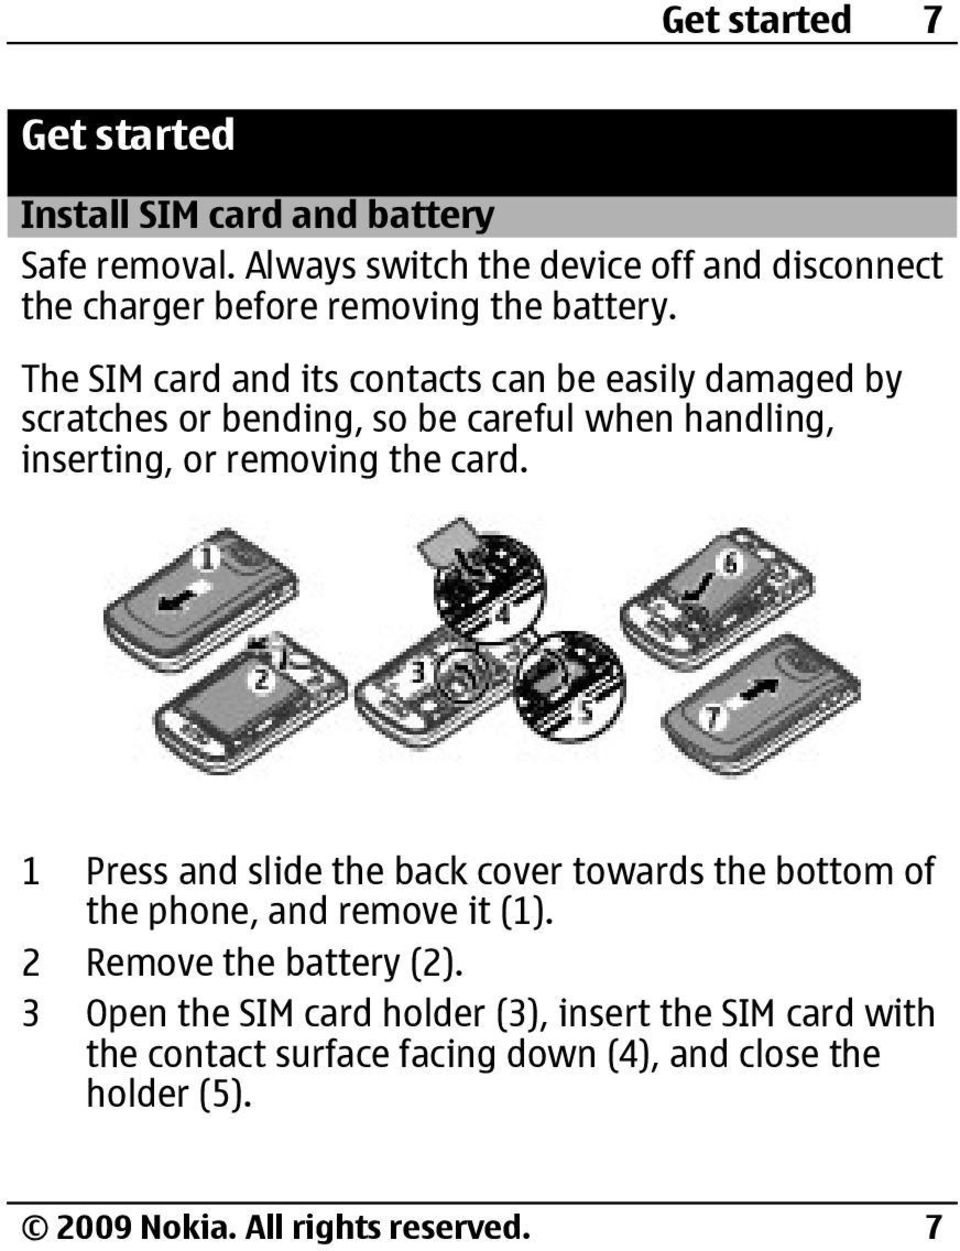 The SIM card and its contacts can be easily damaged by scratches or bending, so be careful when handling, inserting, or removing the card.